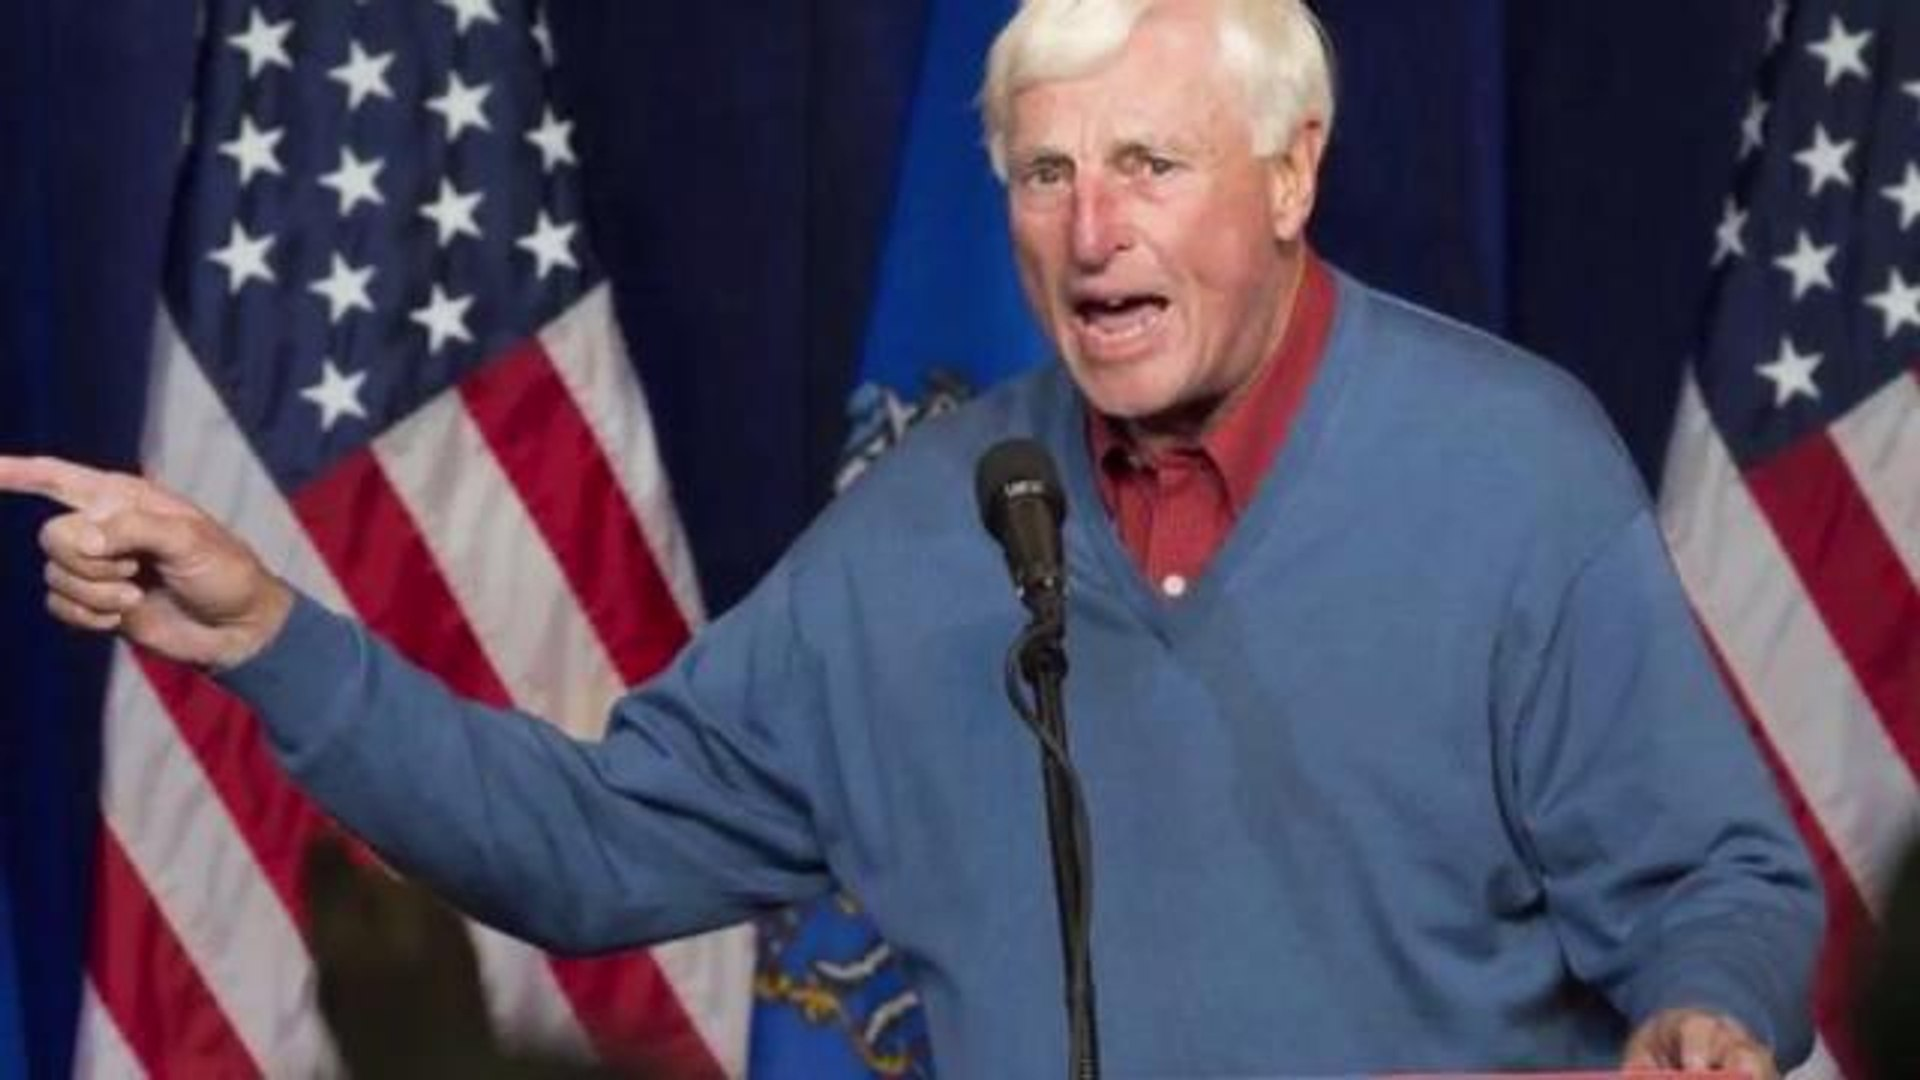 Report: Bobby Knight was investigated for allegedly groping women